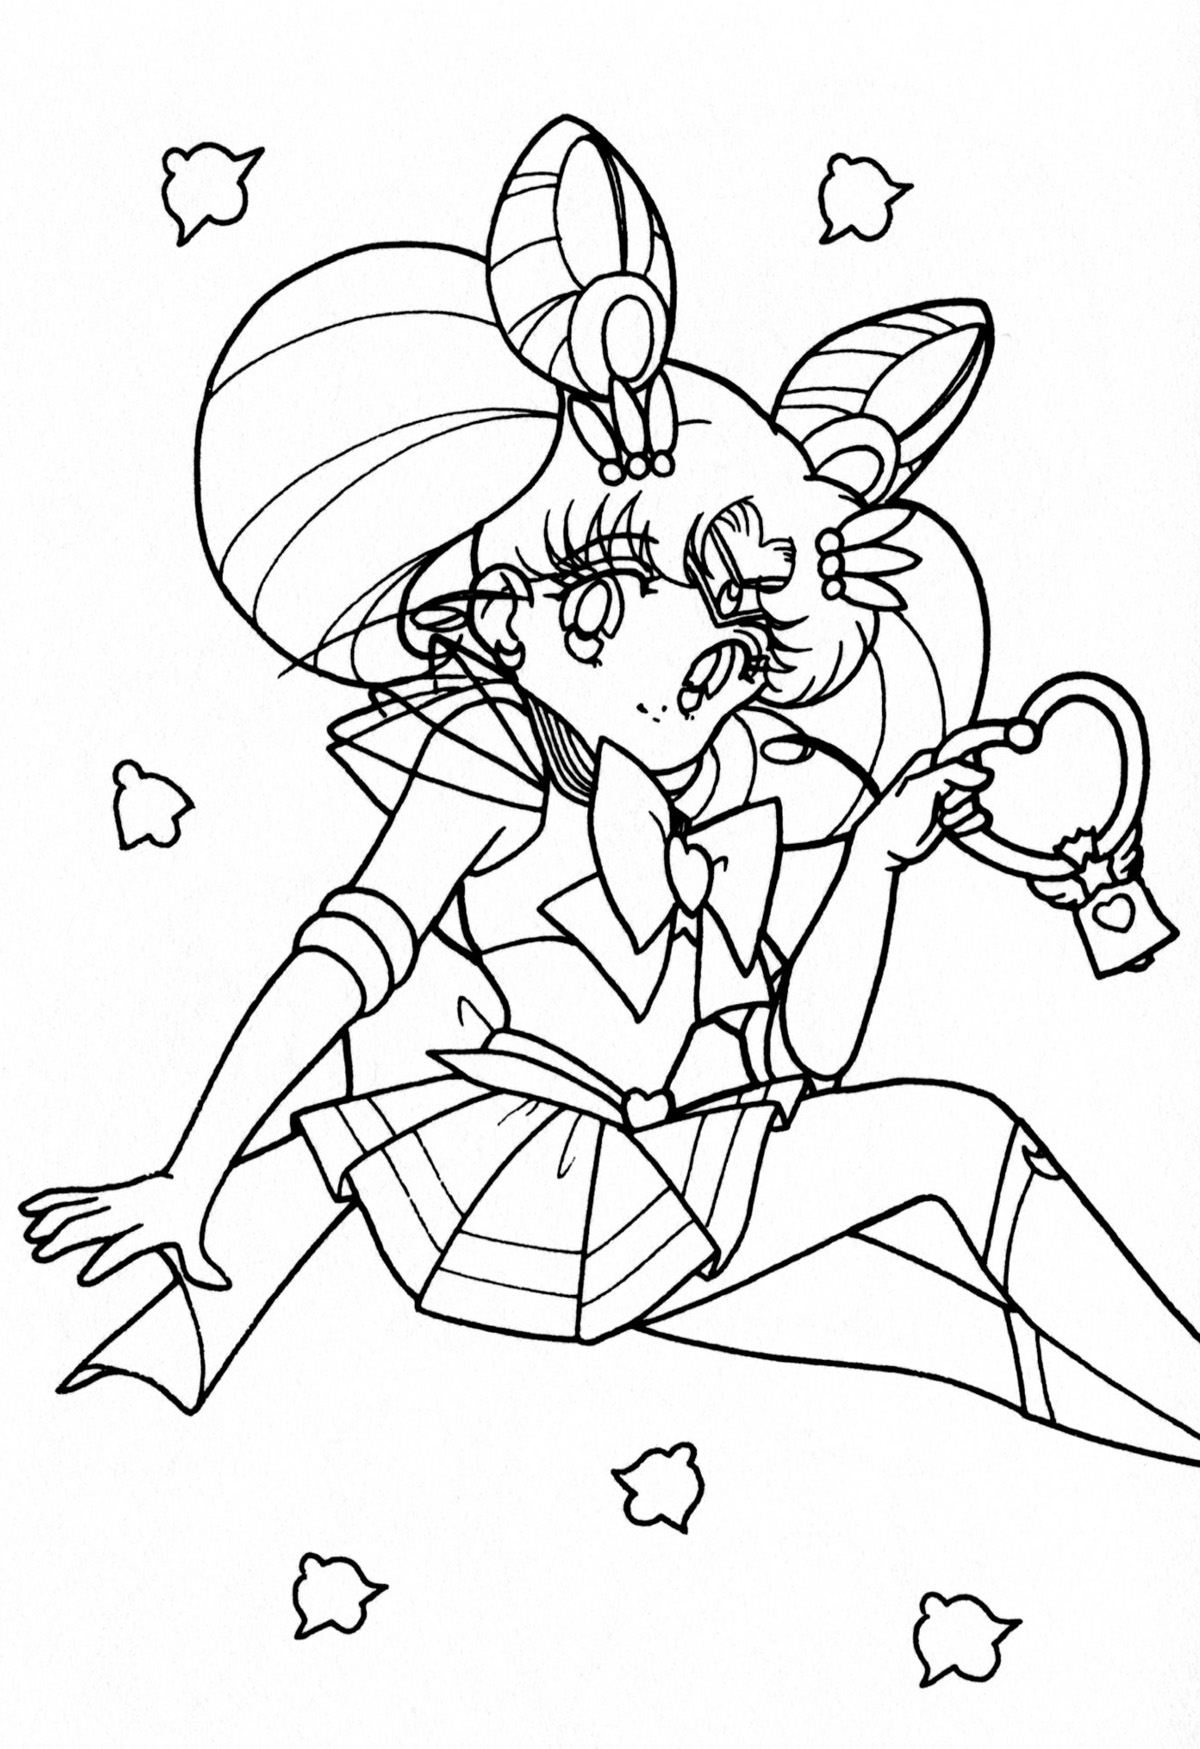 sailor moon coloring pages free printable sailor moon coloring pages for kids pages moon coloring sailor